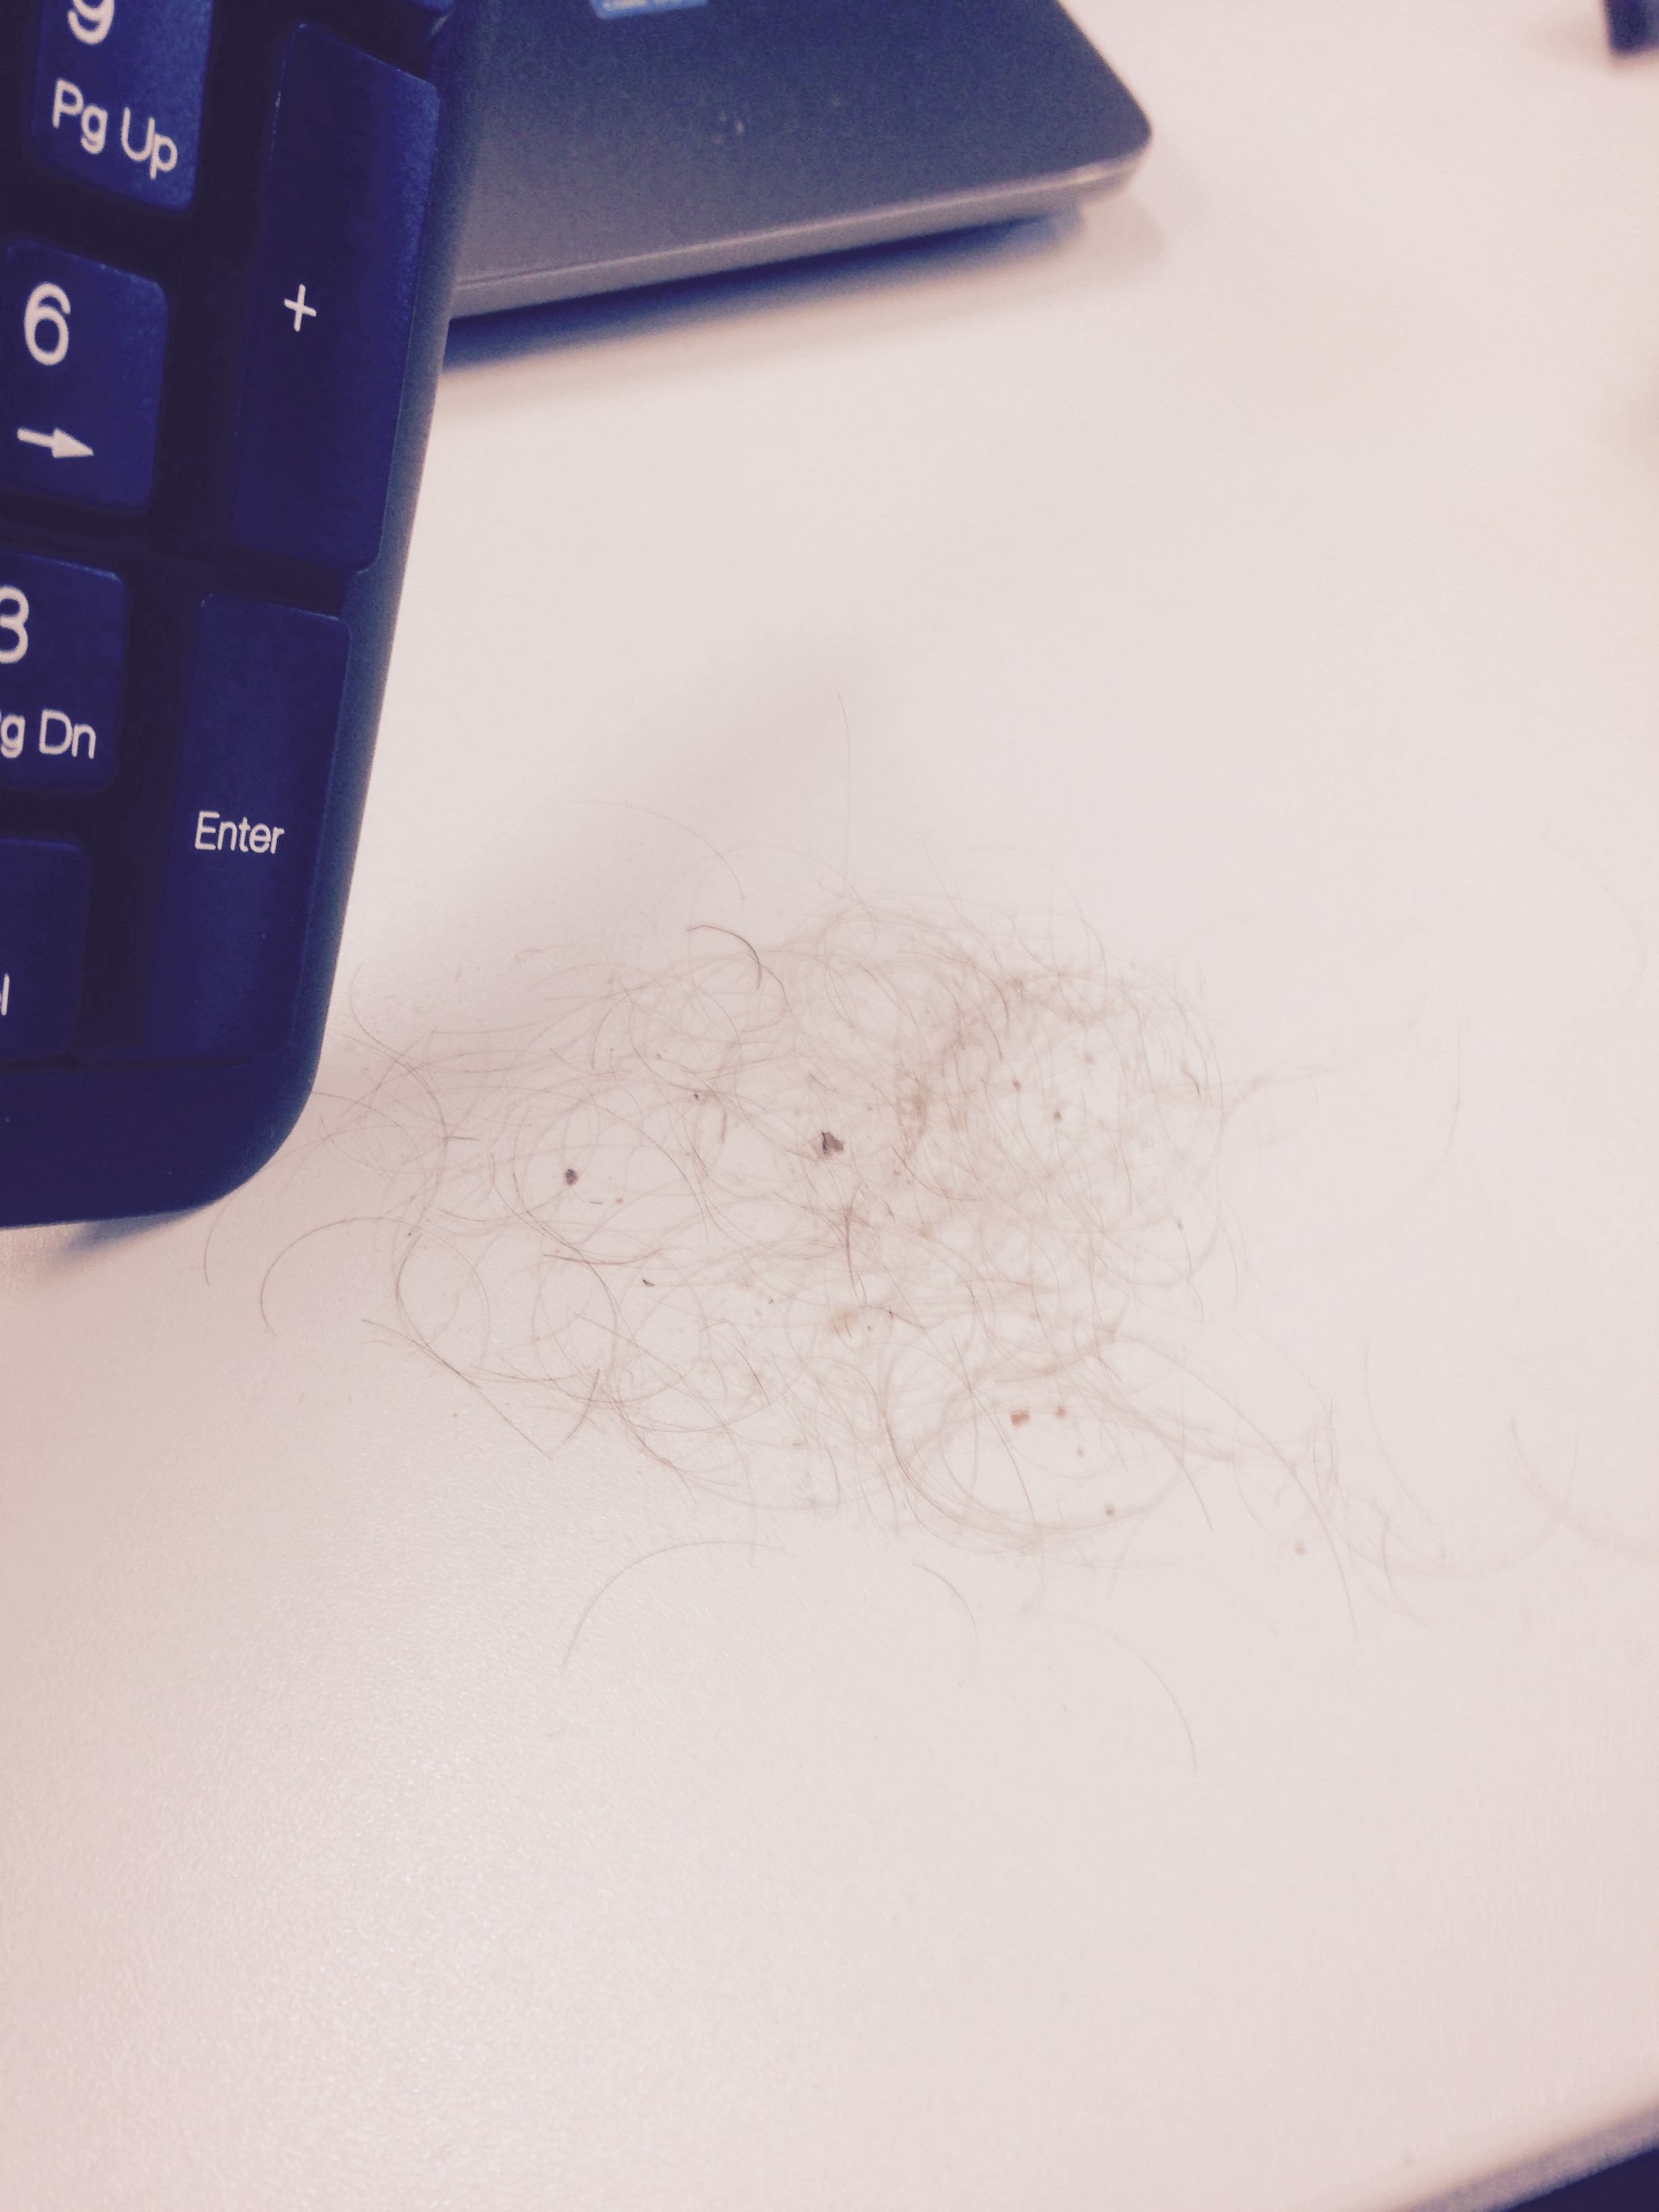 Hair from after cleaning a dirty keyboard